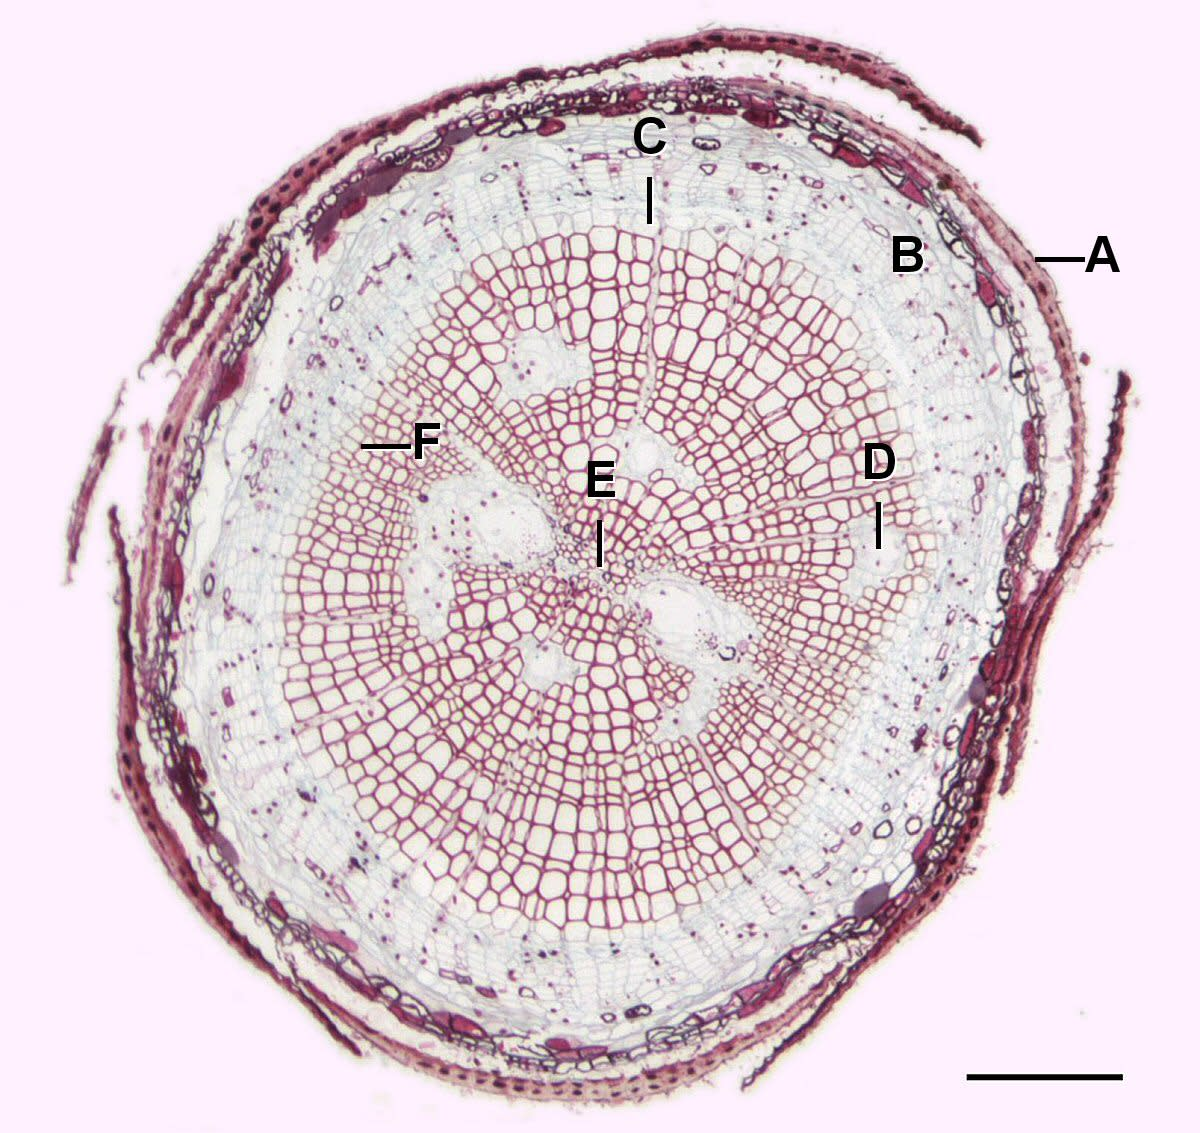 In this image of a pine tree's root, A is the epidermis, B is the cortex, C is the vascular cambium, D is the resin duct, E is the xylem, and F is the phloem.